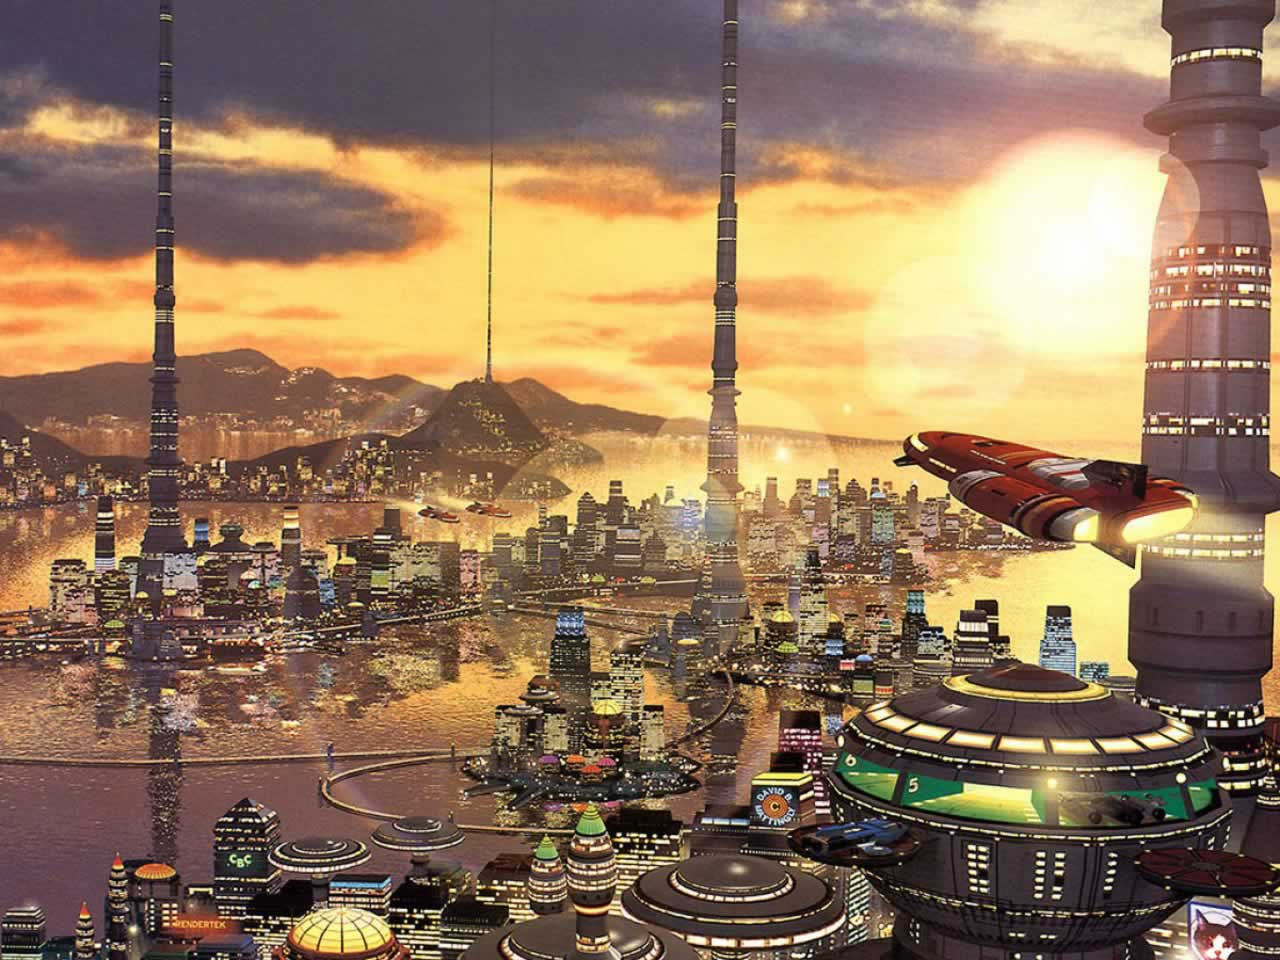 Science Fiction wallpapers Wallpapers   HD Wallpapers 29427 1280x960